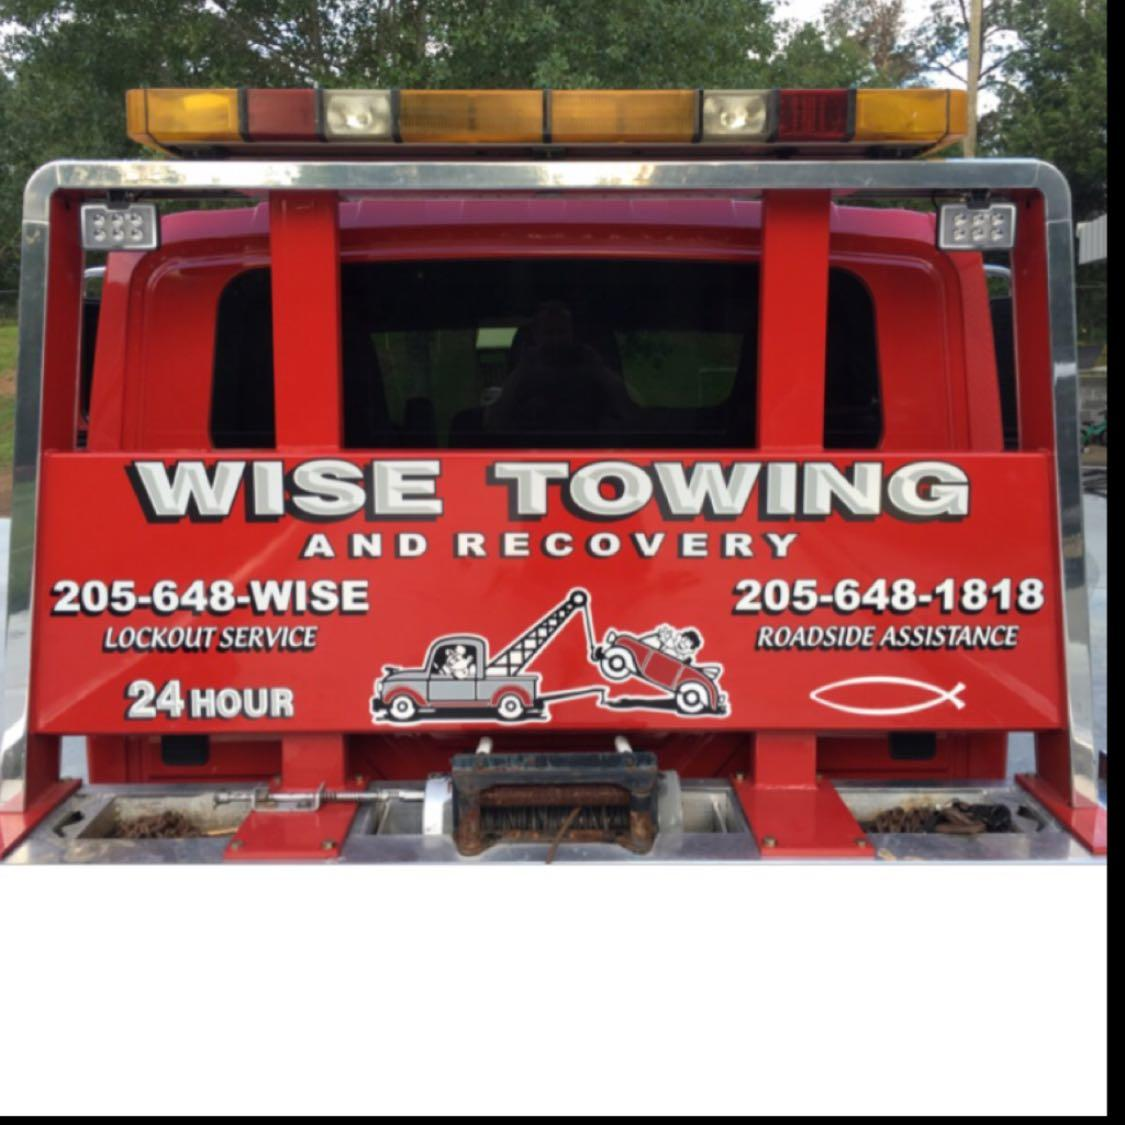 Call today and mention which social media platform you found us on and get 10% off lockouts. Special discounts on towing too. Just ask and mention this post. Thank you so much for the business Alabama.  #wisetowing #wisetowingandrecovery #ilovemyjob #godisgood #towtruck #lockout #doraal #sumitonal #recovery #winchout #roadsideassistance